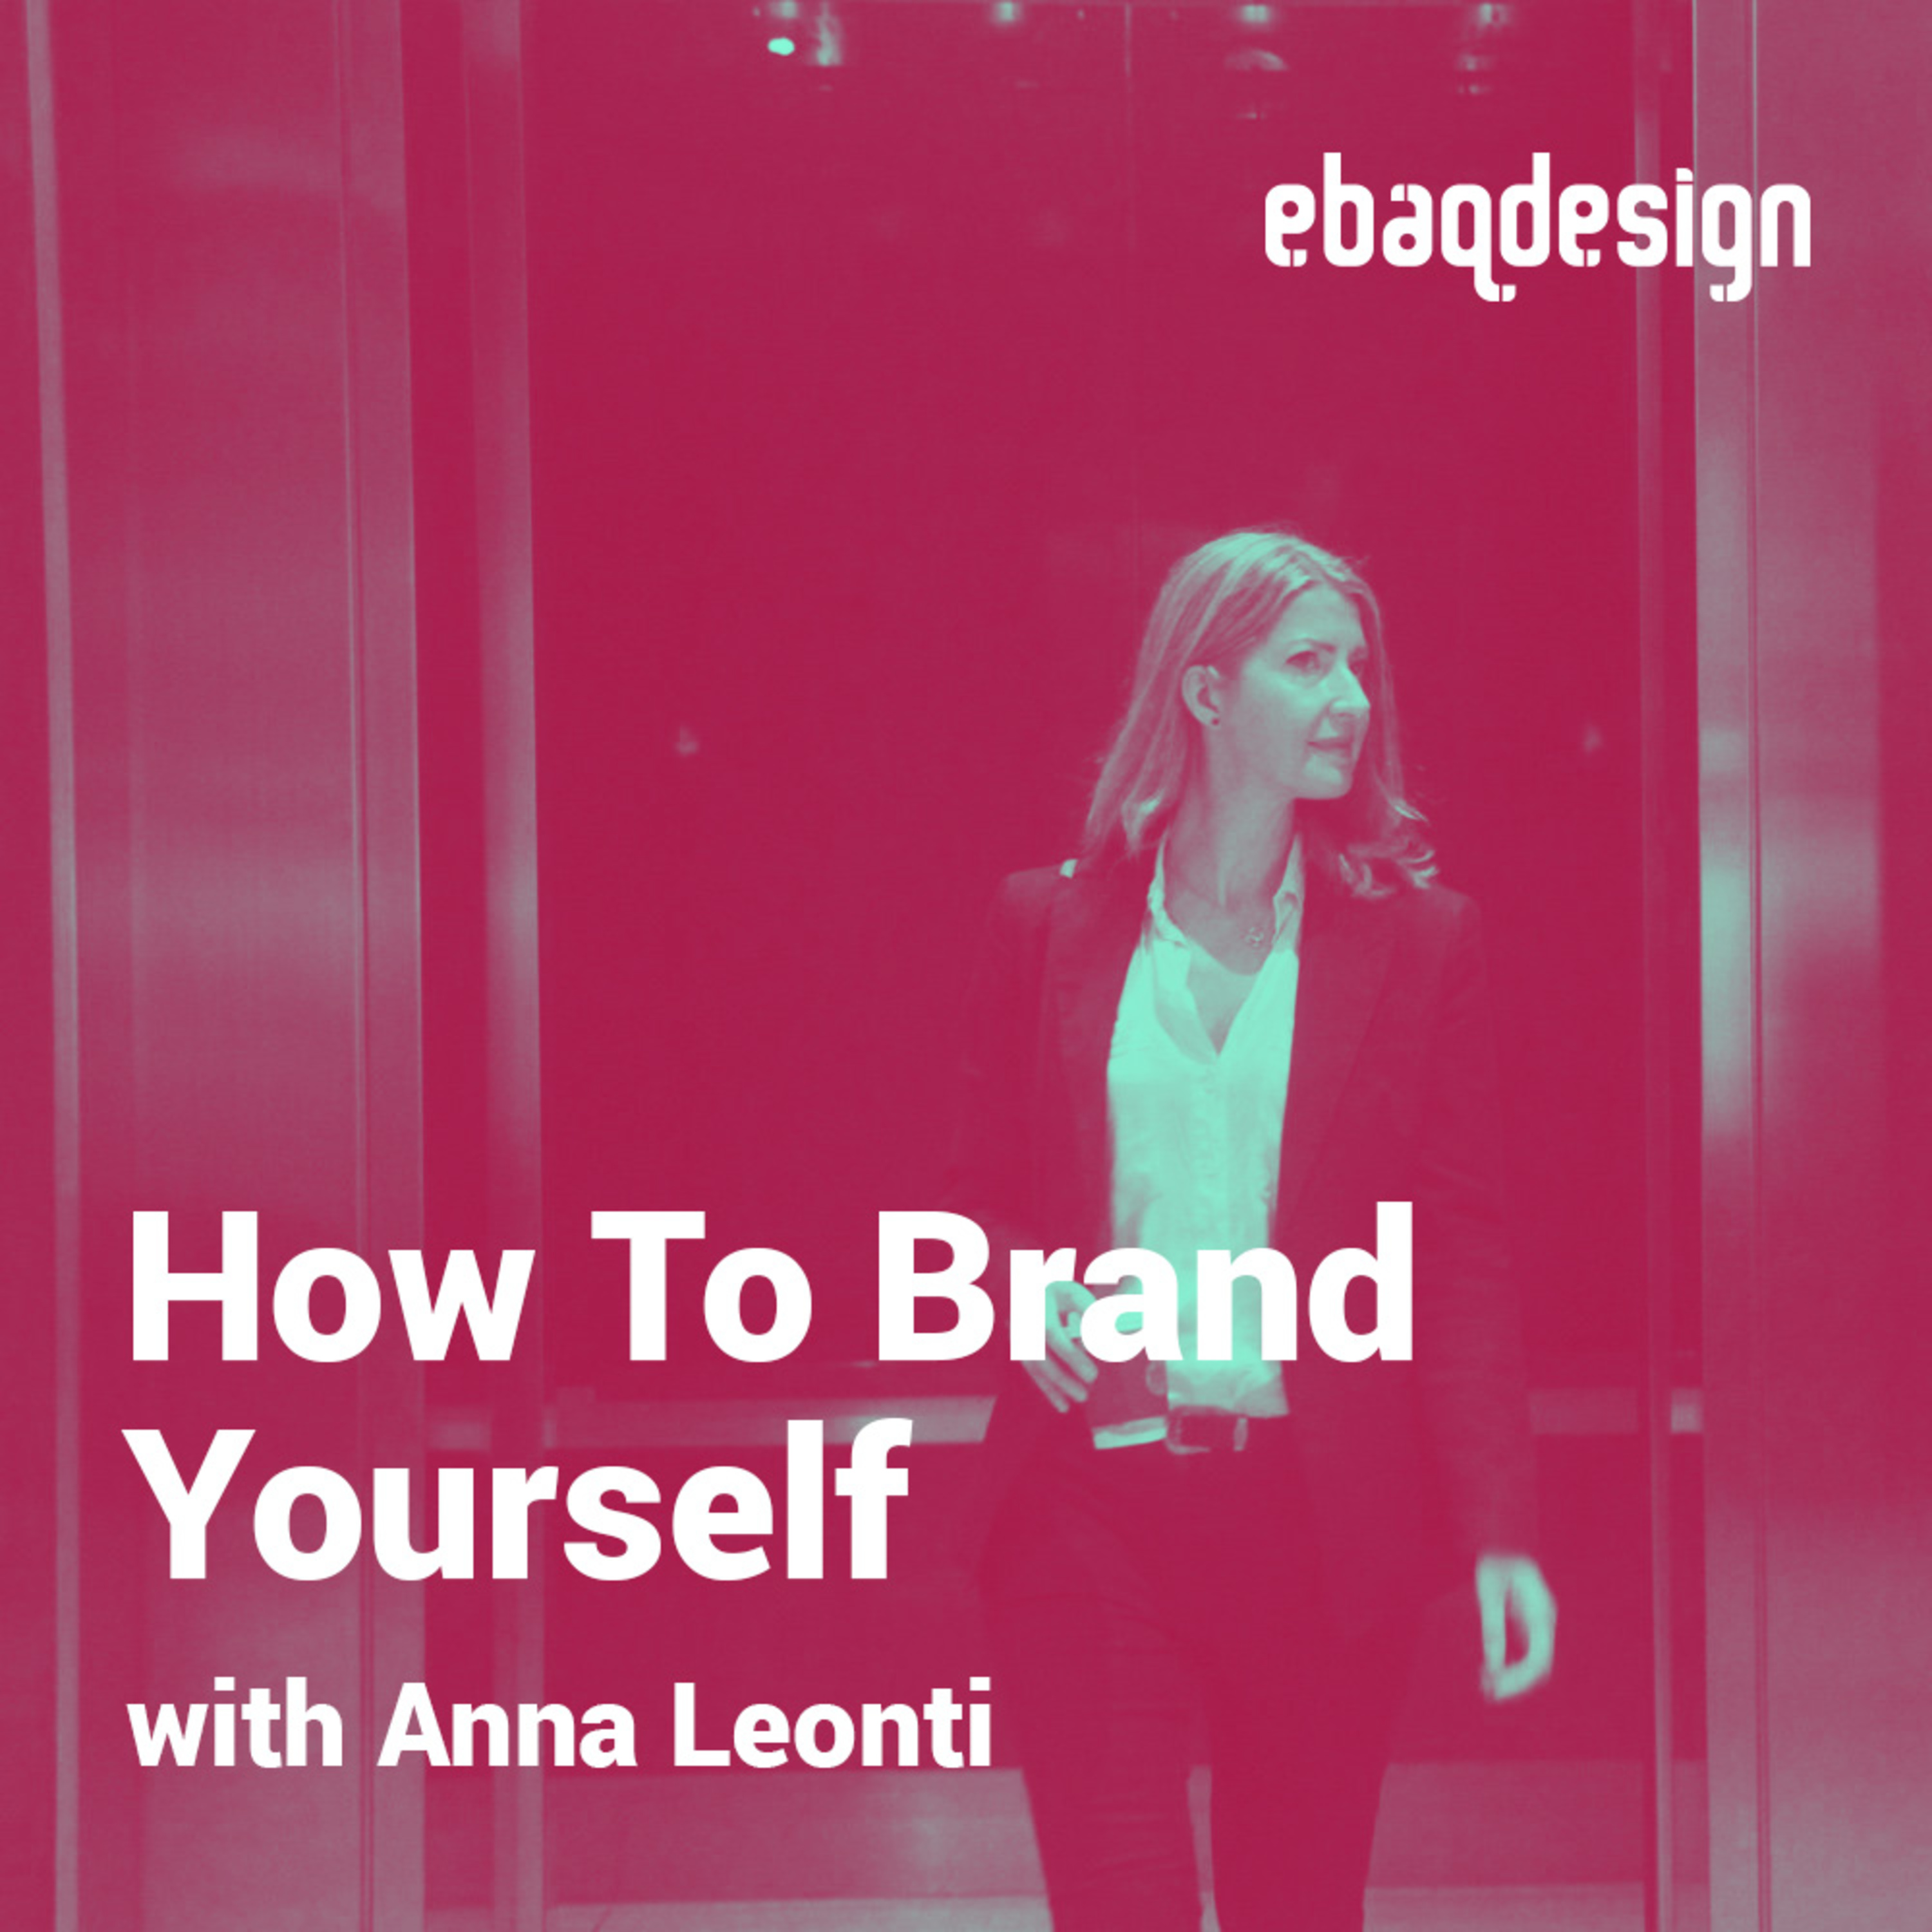 How To Brand Yourself with Anna Leonti